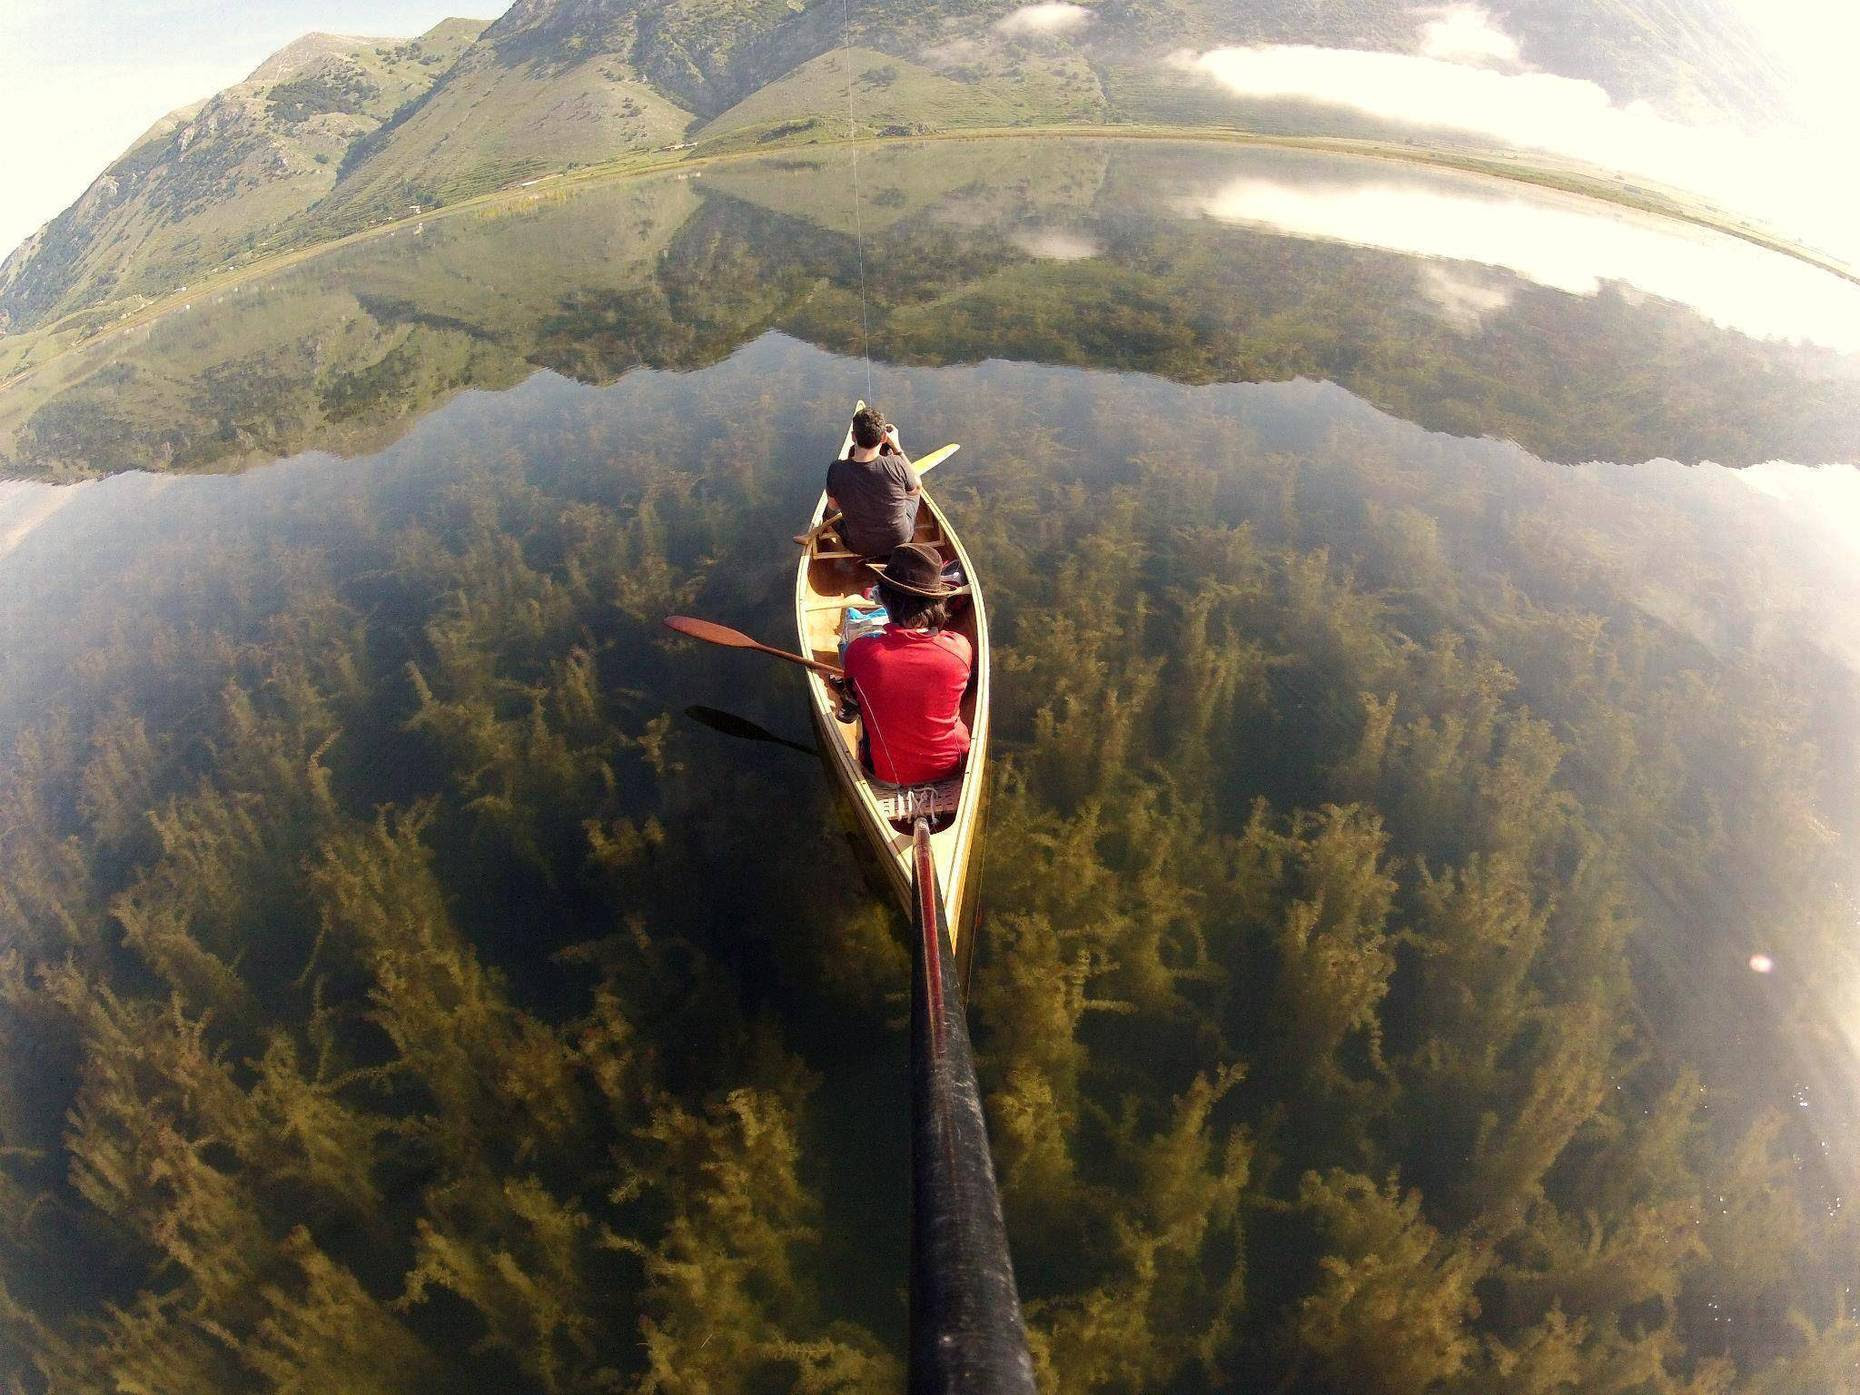 Italy Crystal Clear Lake